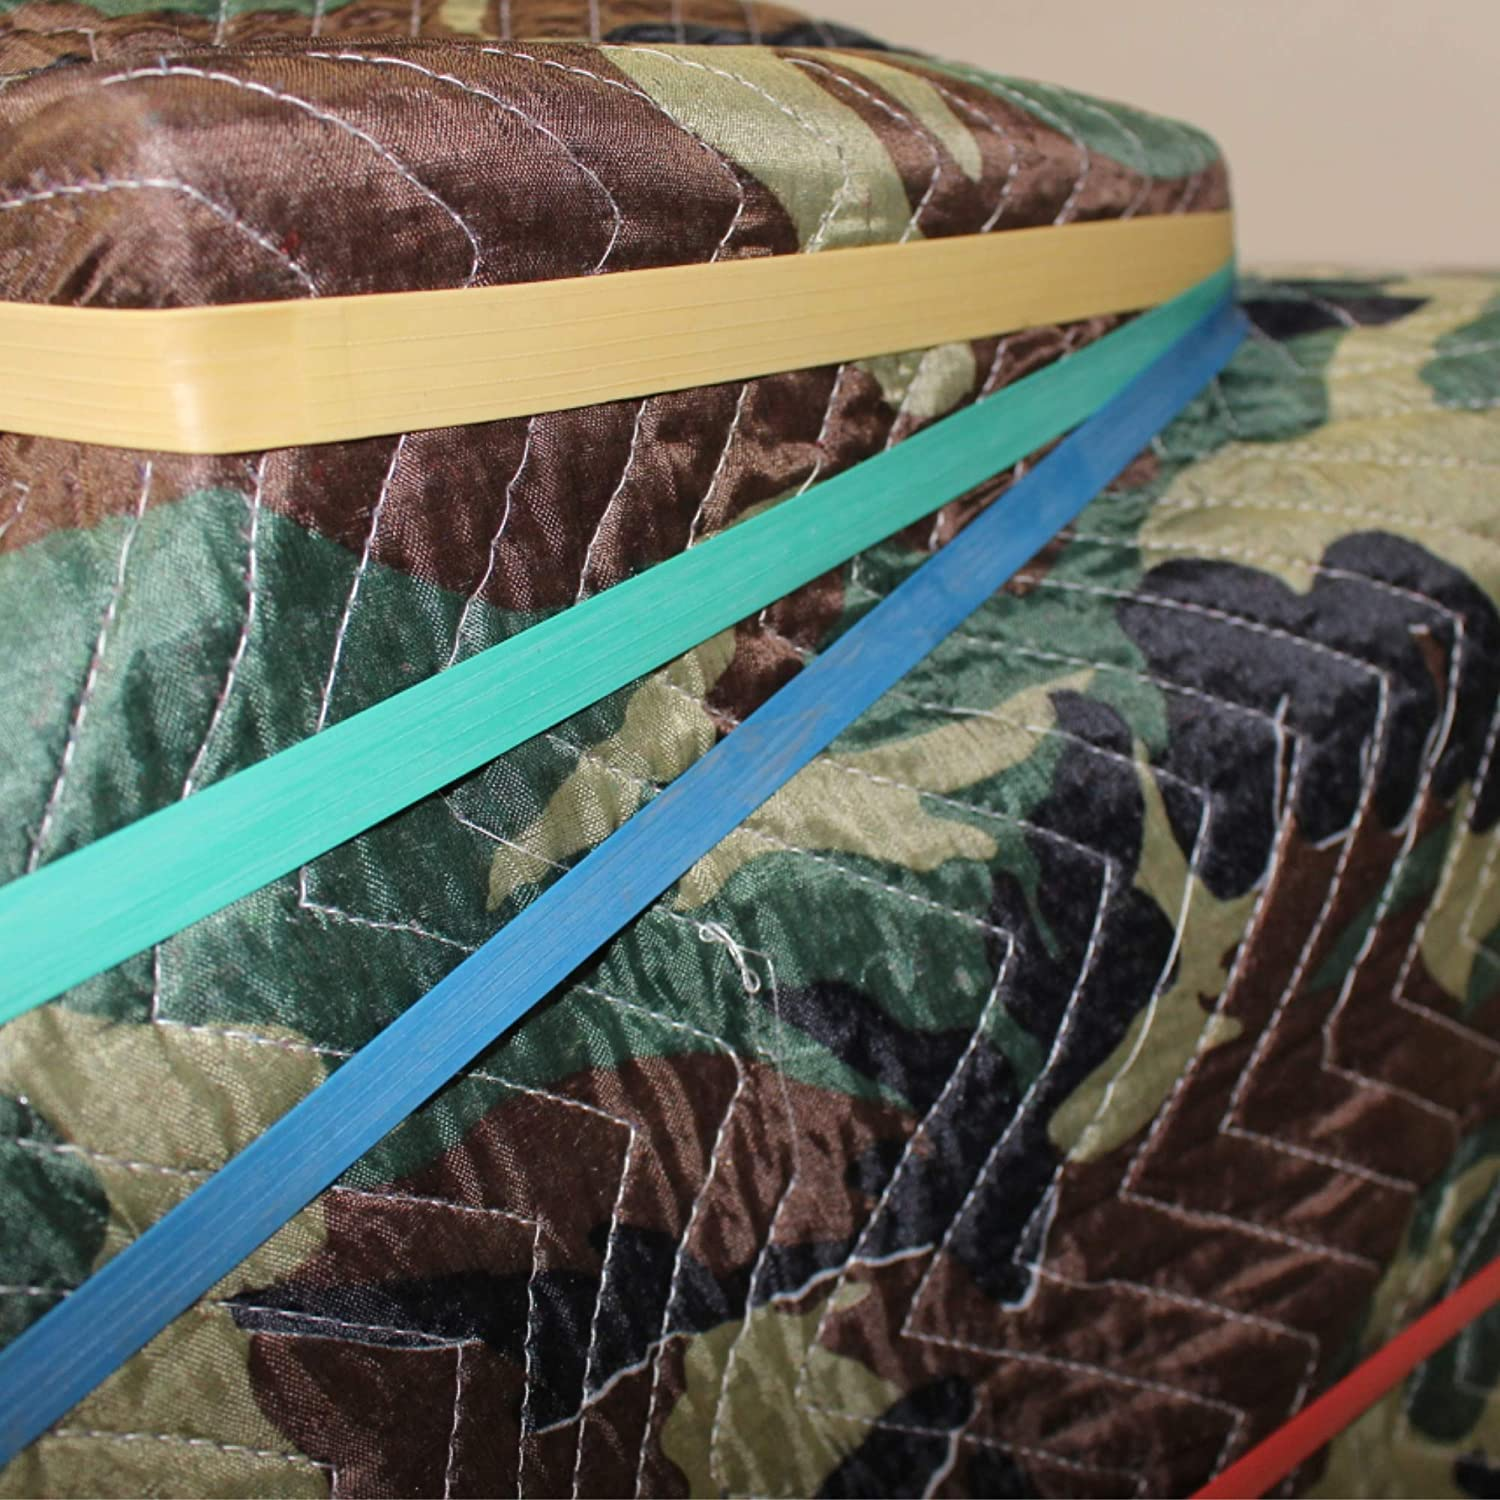 Bulk Mover Bands - SGT KNOTS Furniture Extra Large Rubber Bands Colorful Elastic Rubberbands for Moving /& Supplies Blankets Medium - Green Wide Ruber Band to Secure Loads 30 in - 24 Pack